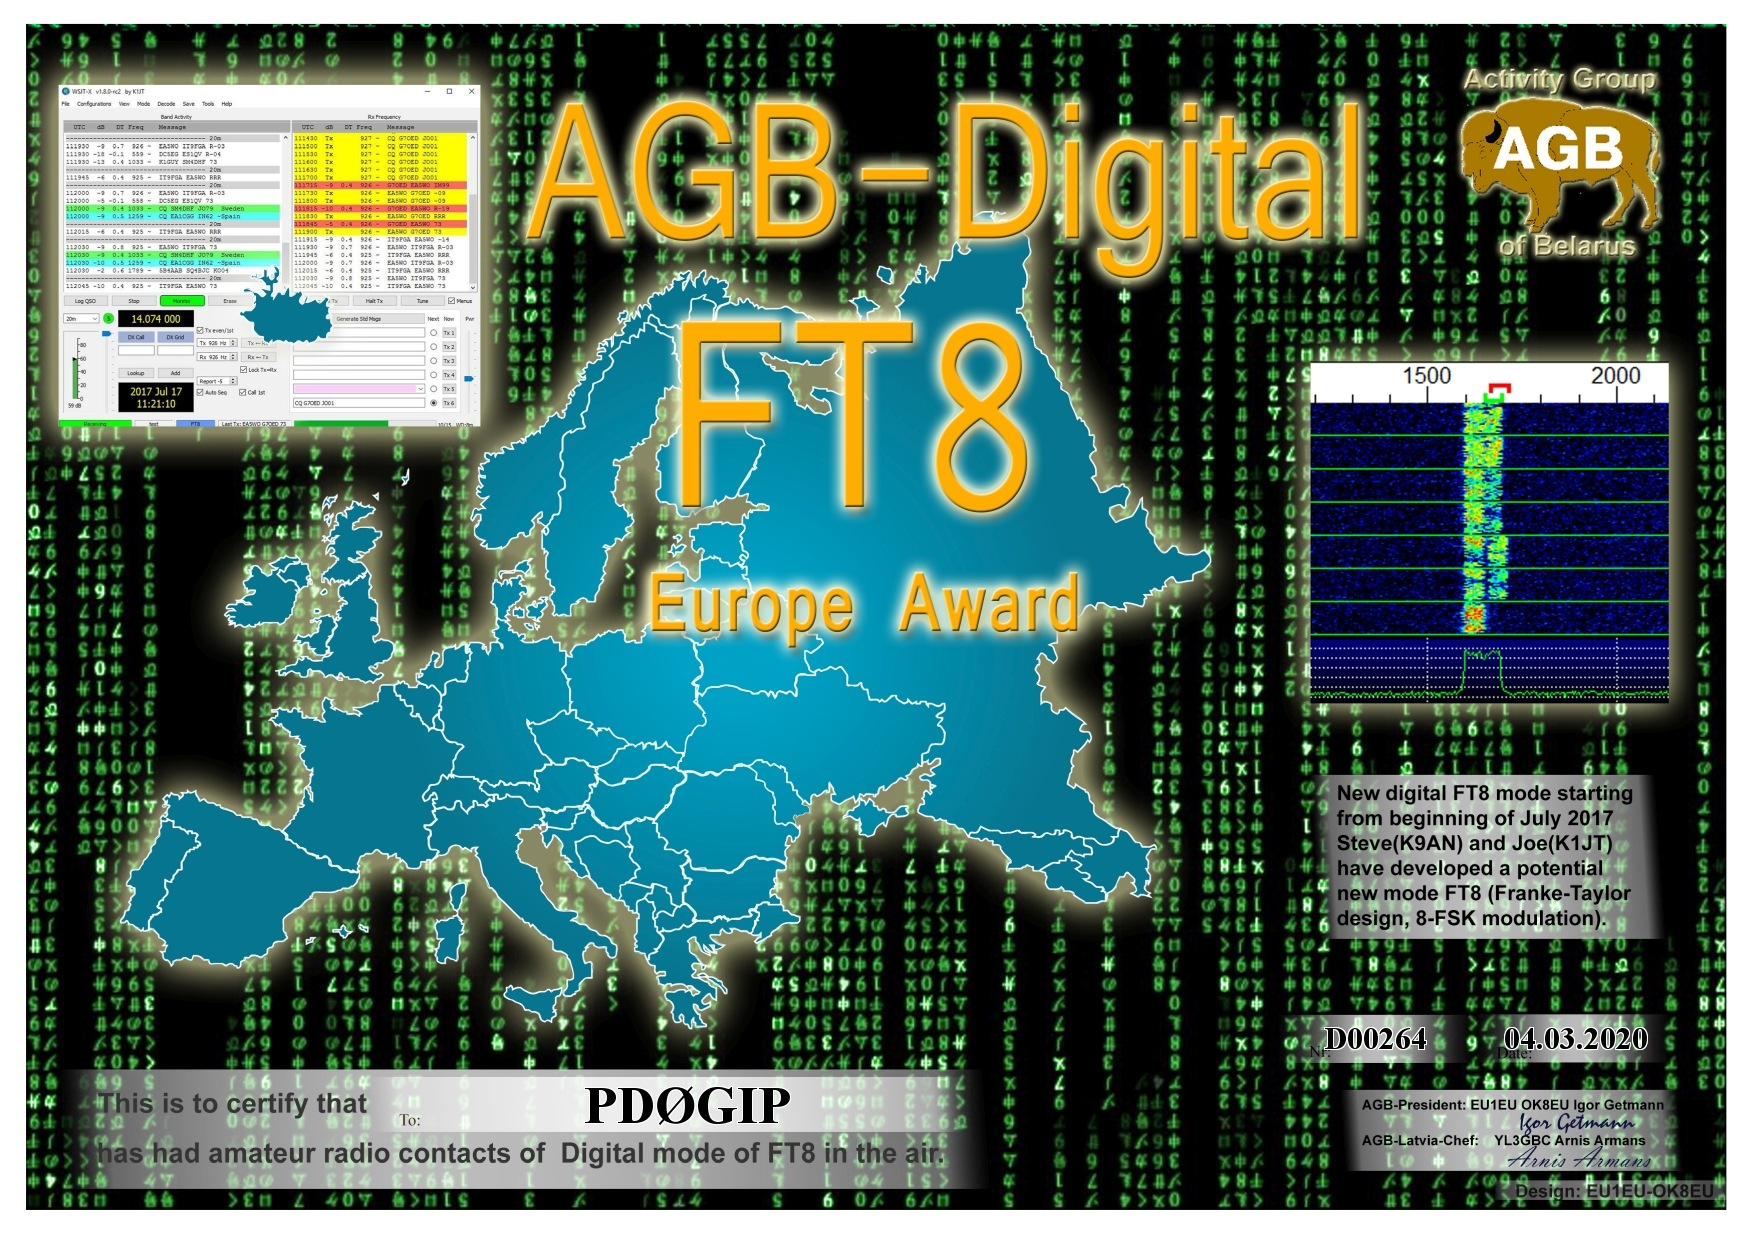 PD0GIP FT8 EUROPE BASIC AGB